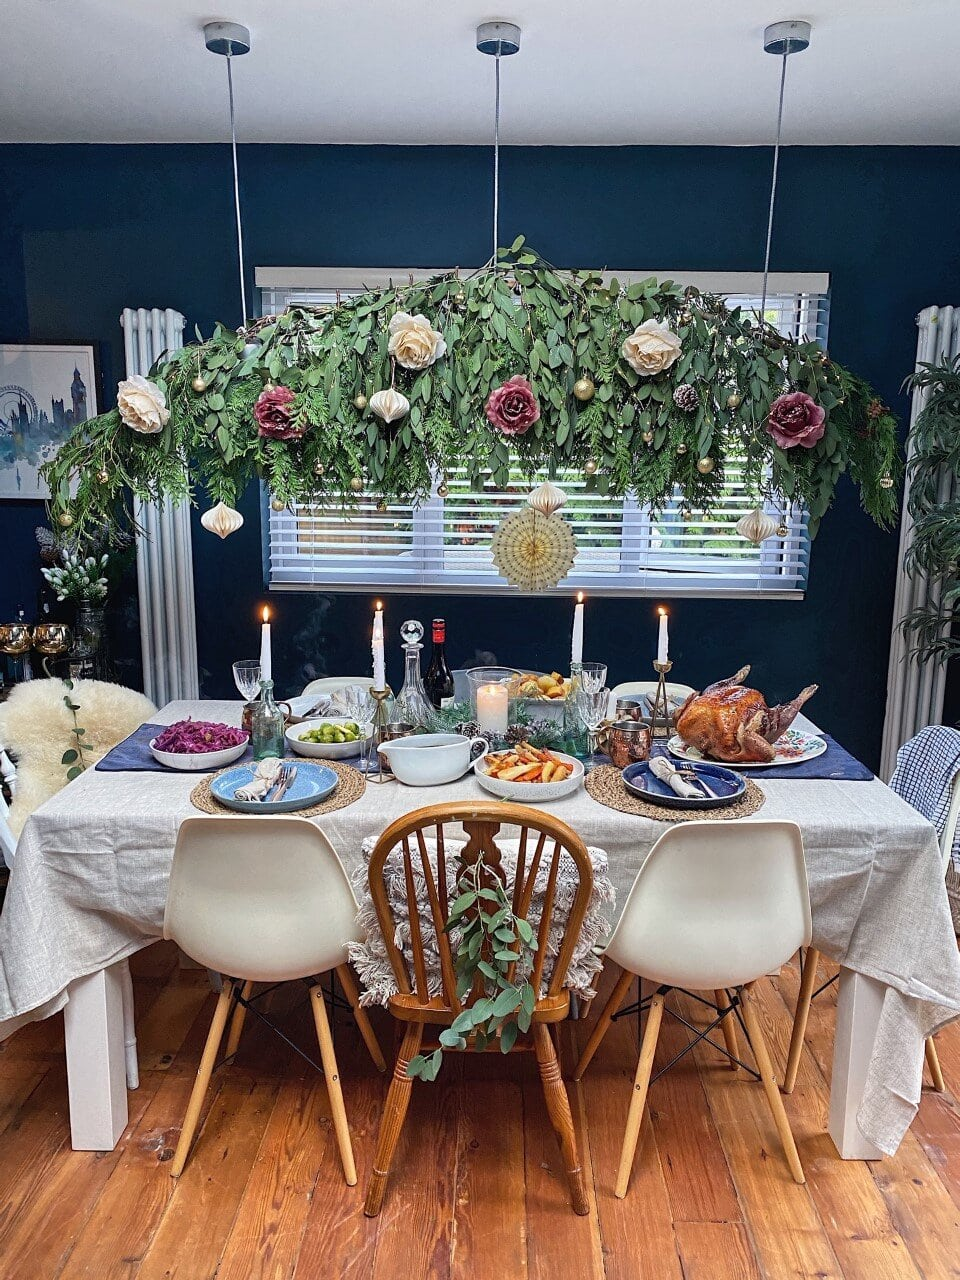 How to Create a Hanging Christmas Table Decoration